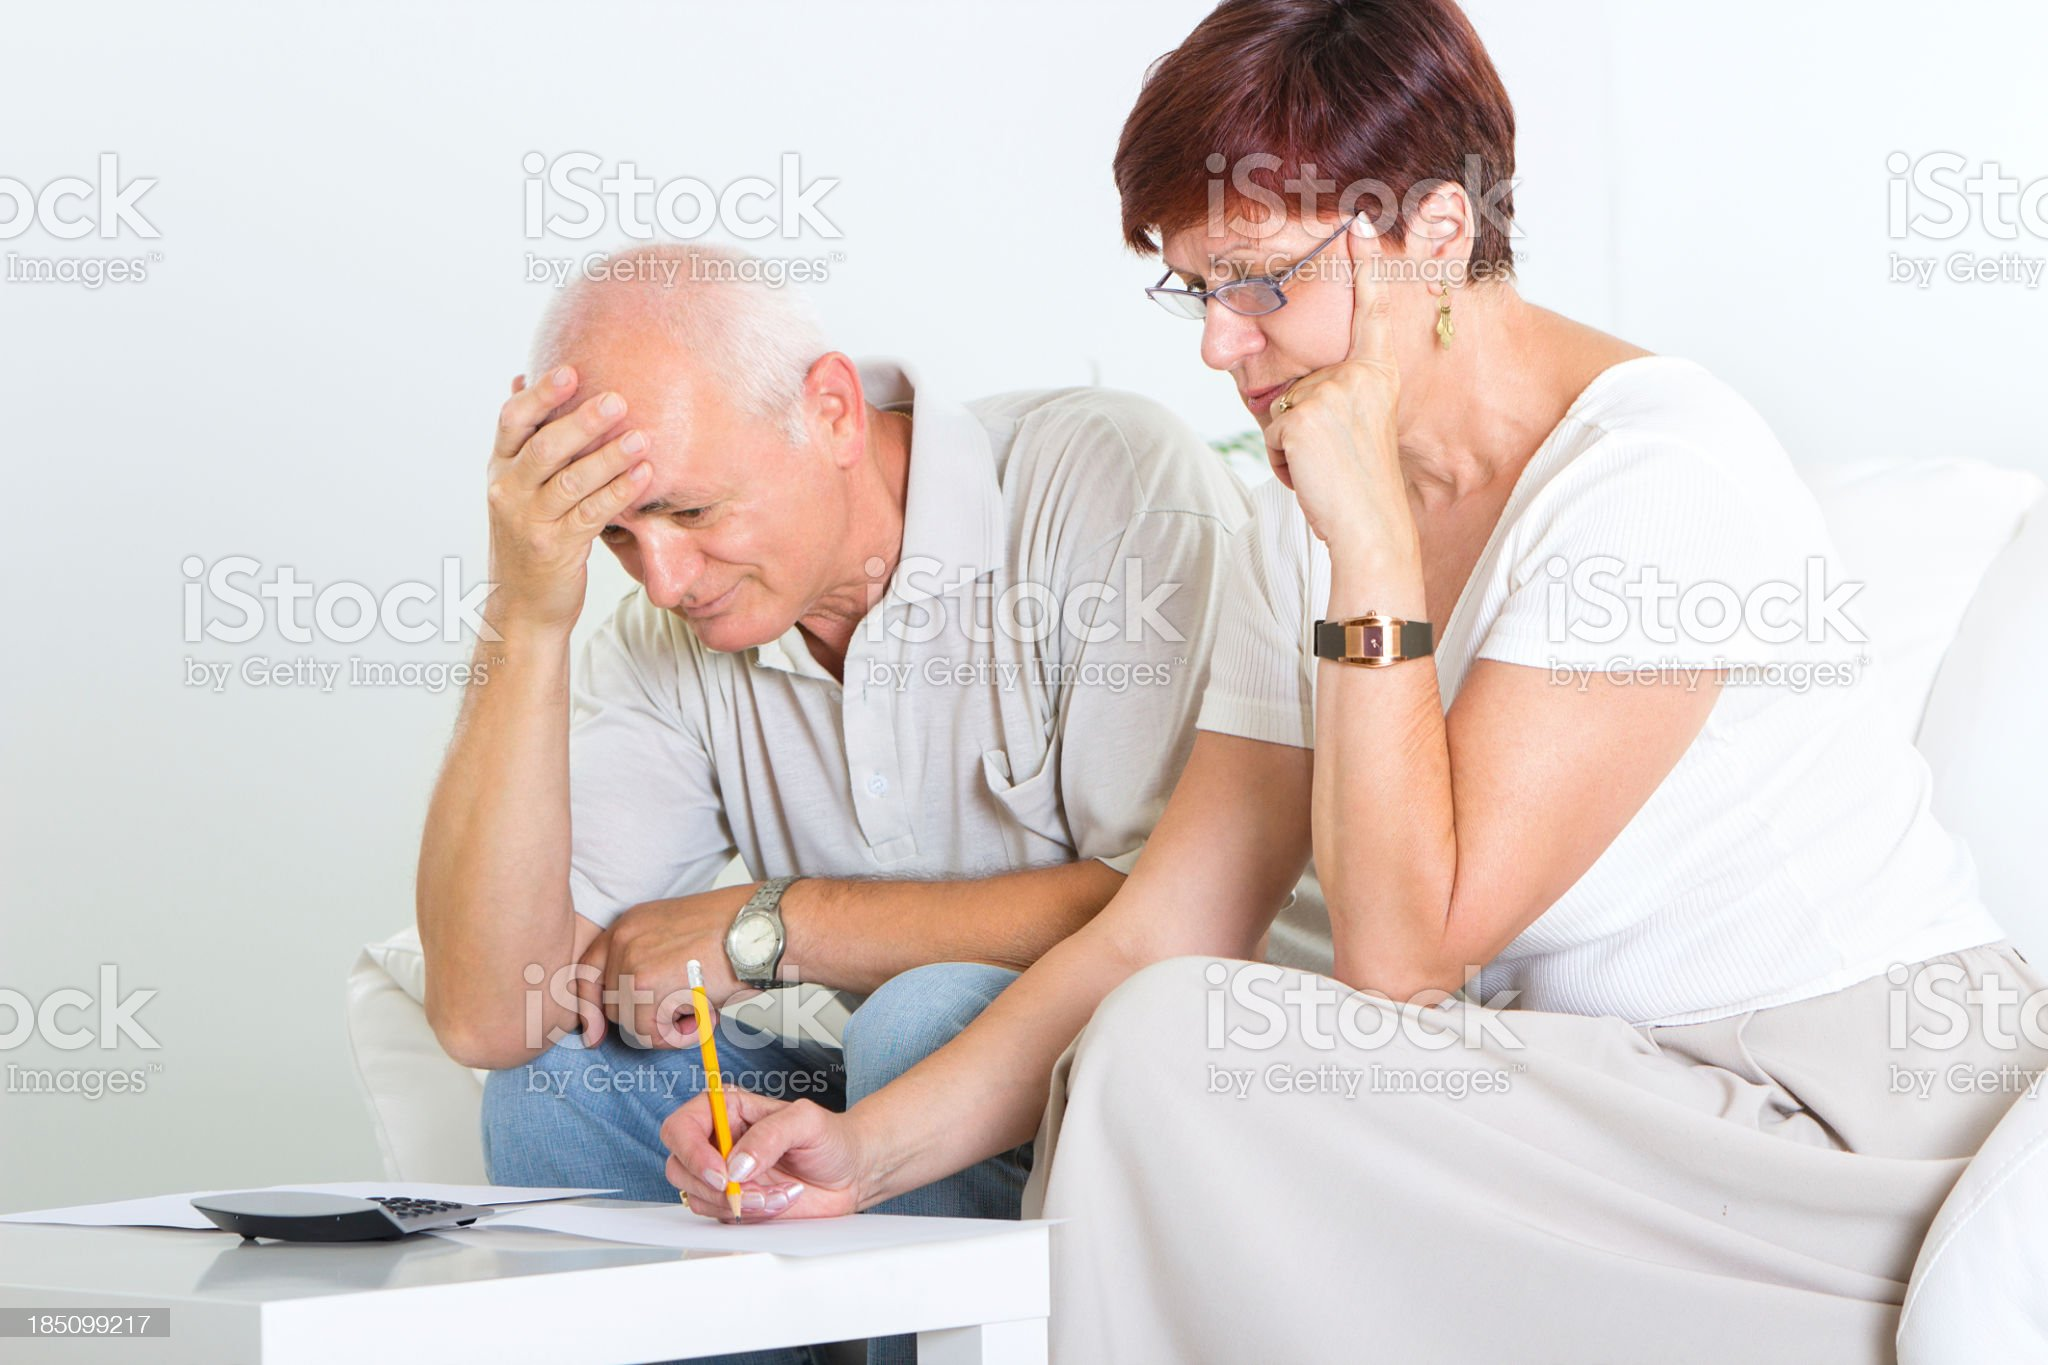 Mid adult couple examining out financial documents royalty-free stock photo